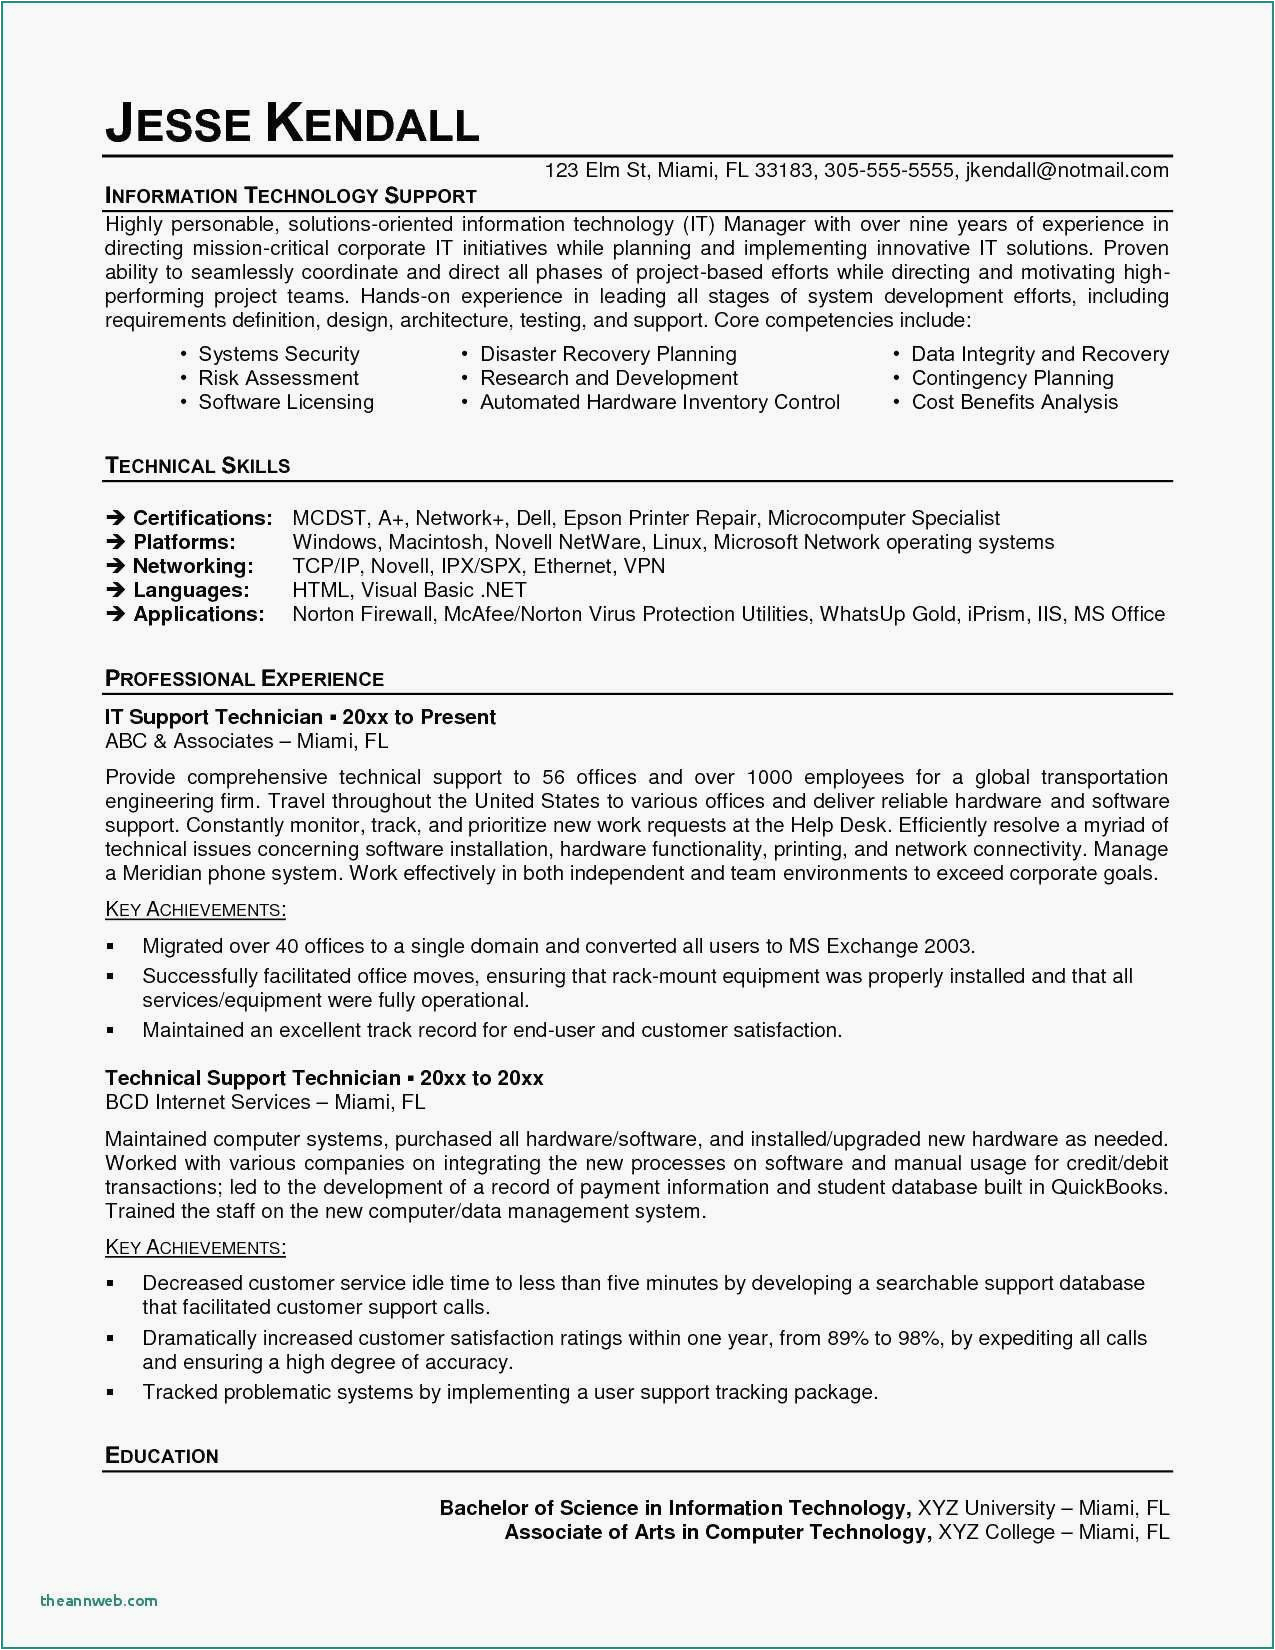 Sample Resume with Microsoft Certification Logo Operational Excellence Examples